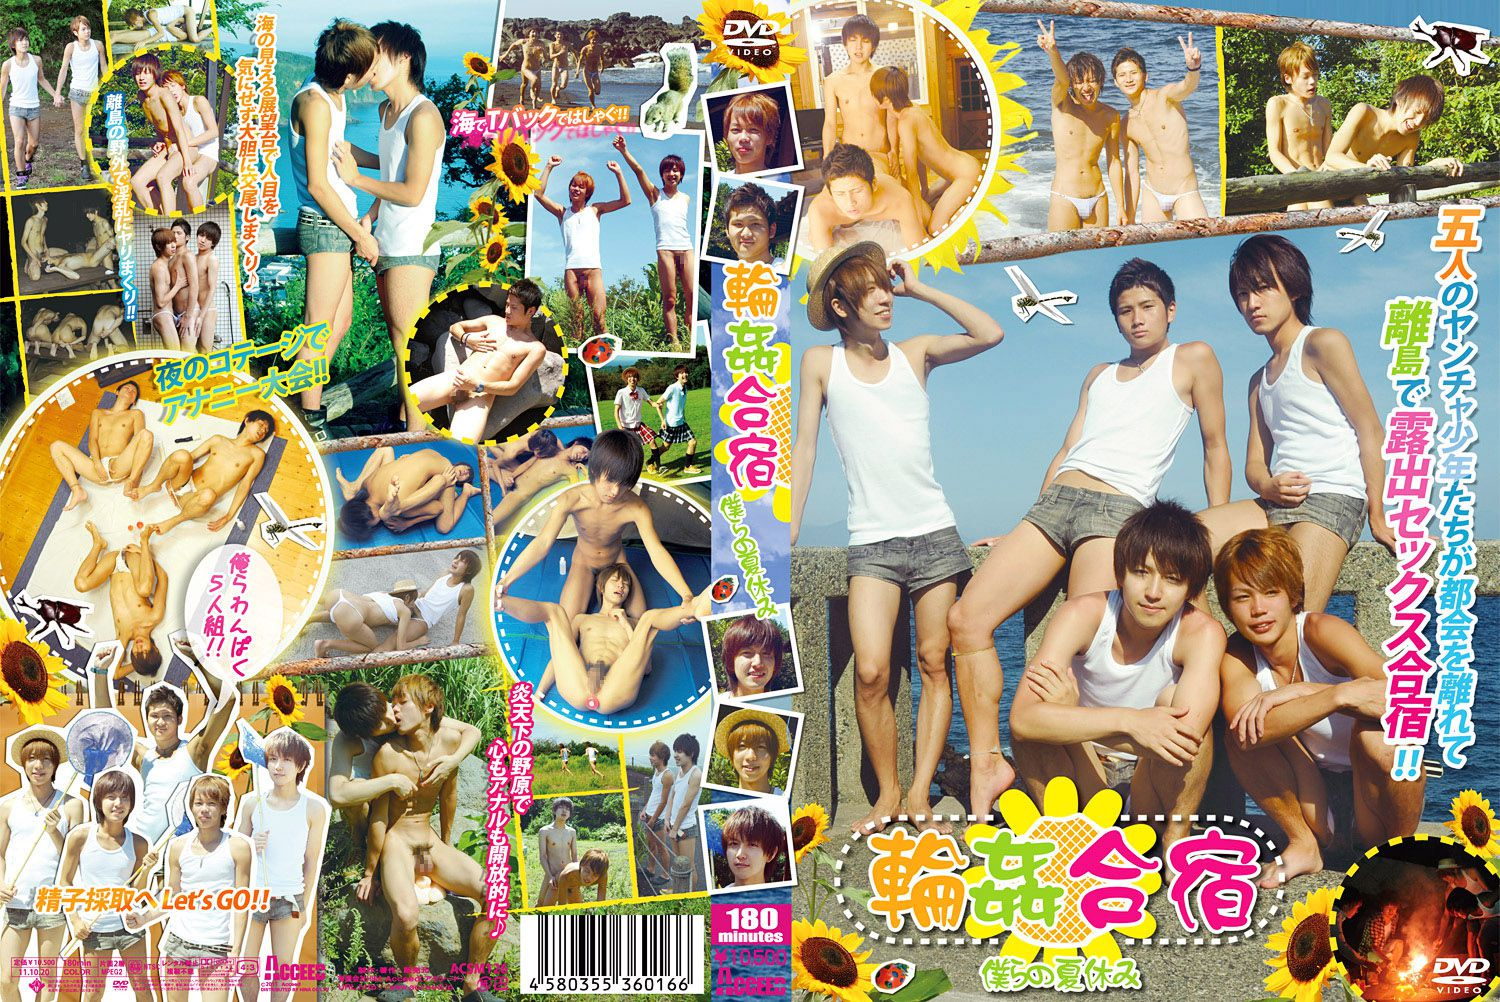 [ACCEED] GANGBANG CAMP – OUR SUMMER (輪姦合宿-僕らの夏休み-) [HD720p]